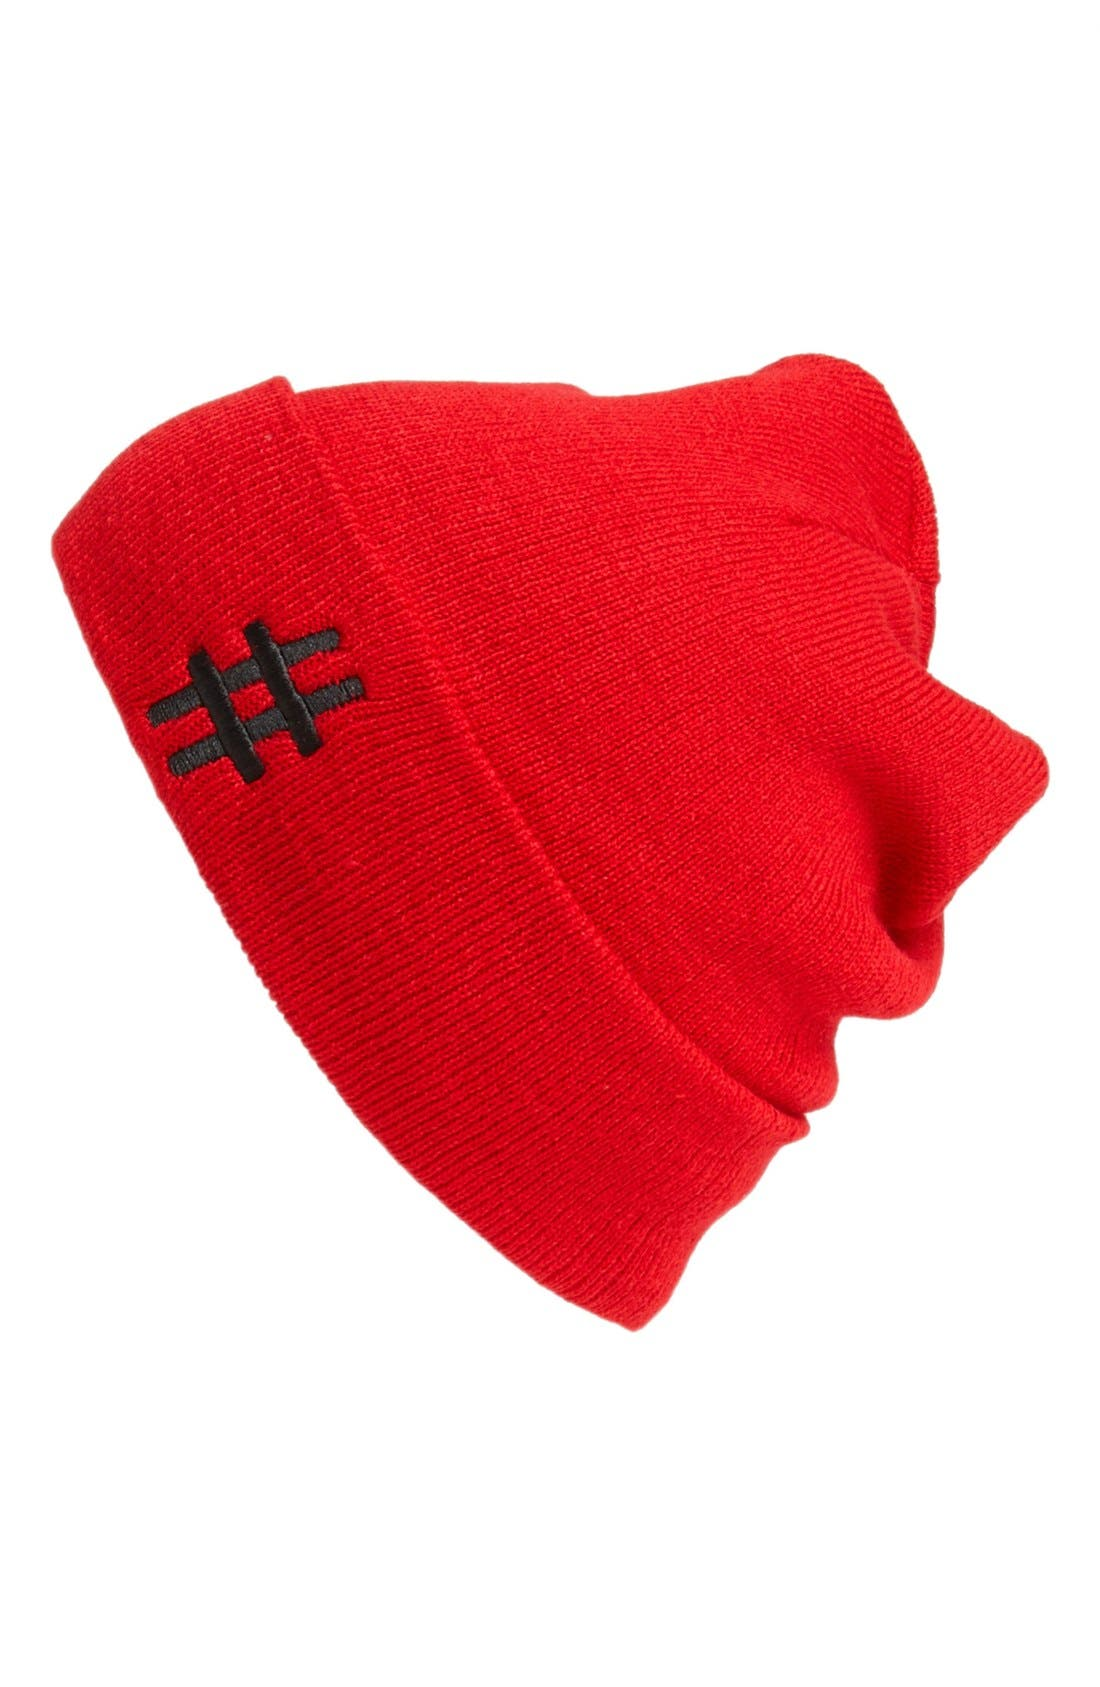 Main Image - In Record Time 'Hashtag' Beanie